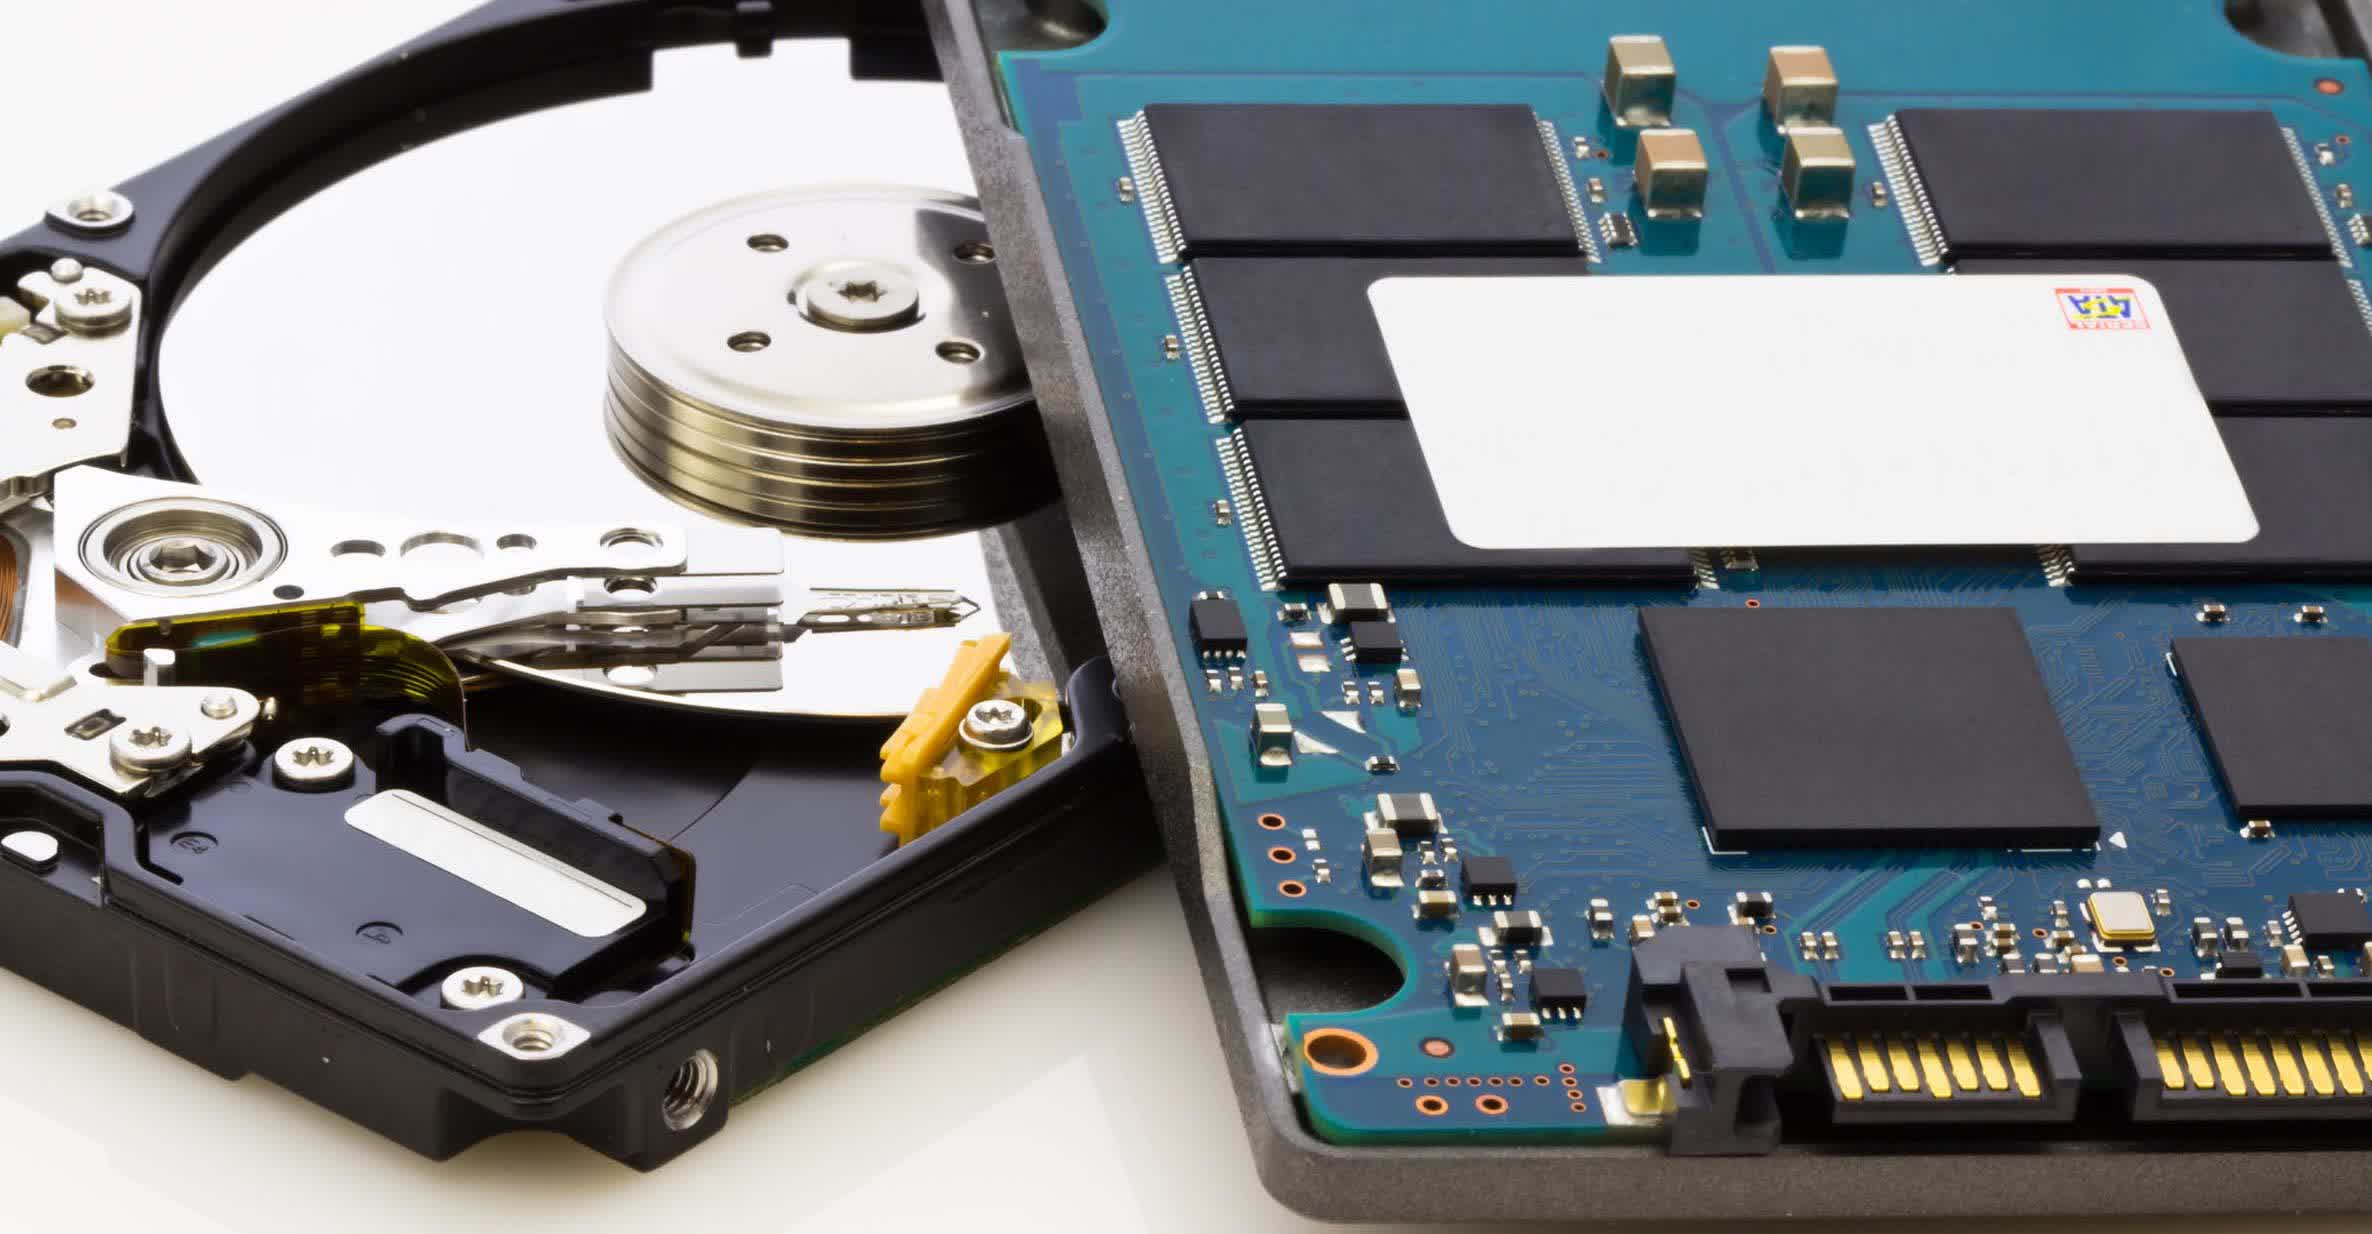 Microsoft is preparing a fix for a Windows 10 bug that affects SSDs